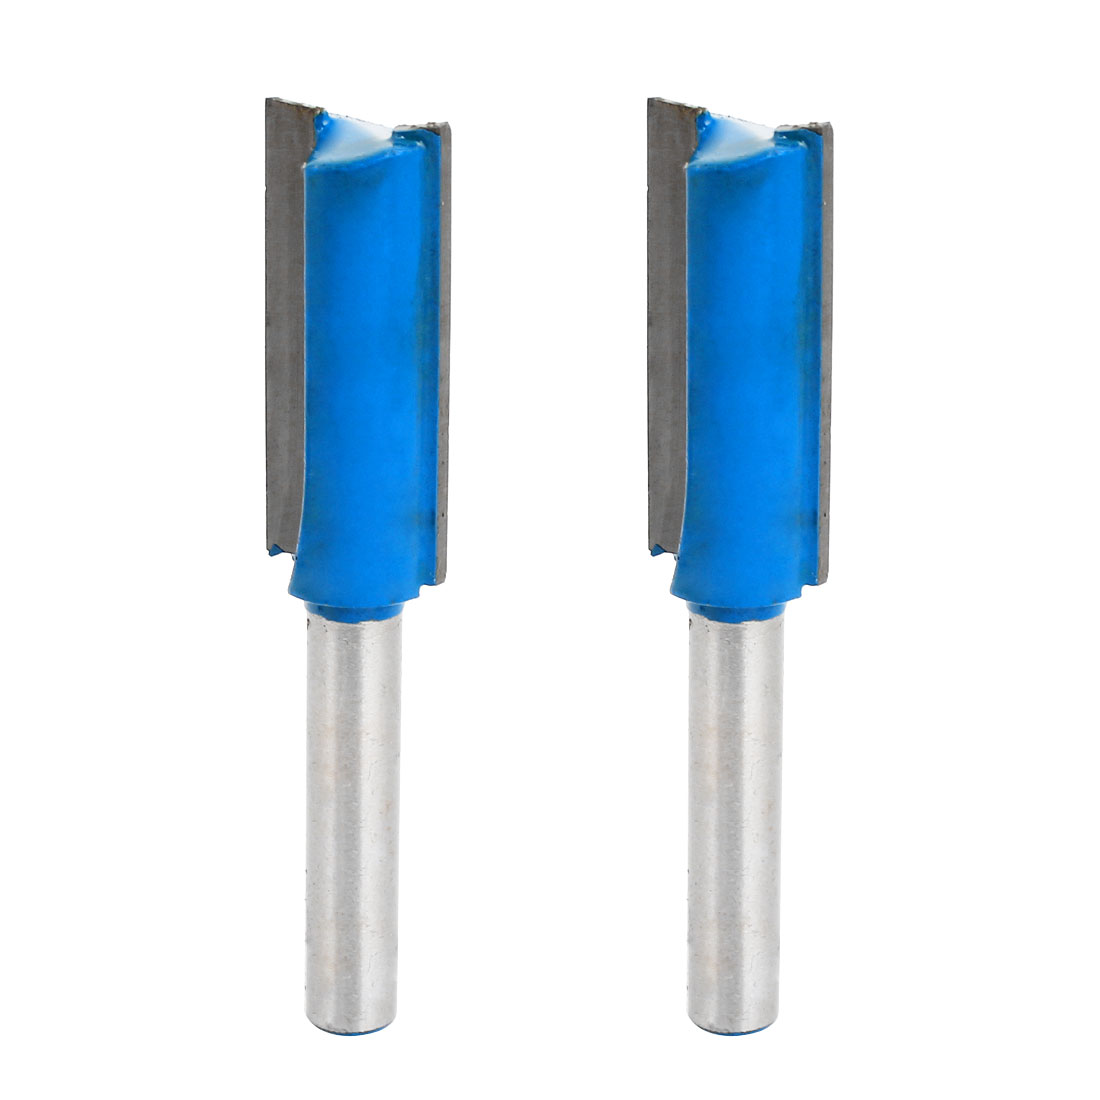 "2 Pcs 1/4"" x 1/2"" Dual Flutes Straight Router Bit Silver Tone Blue 65mm Length"